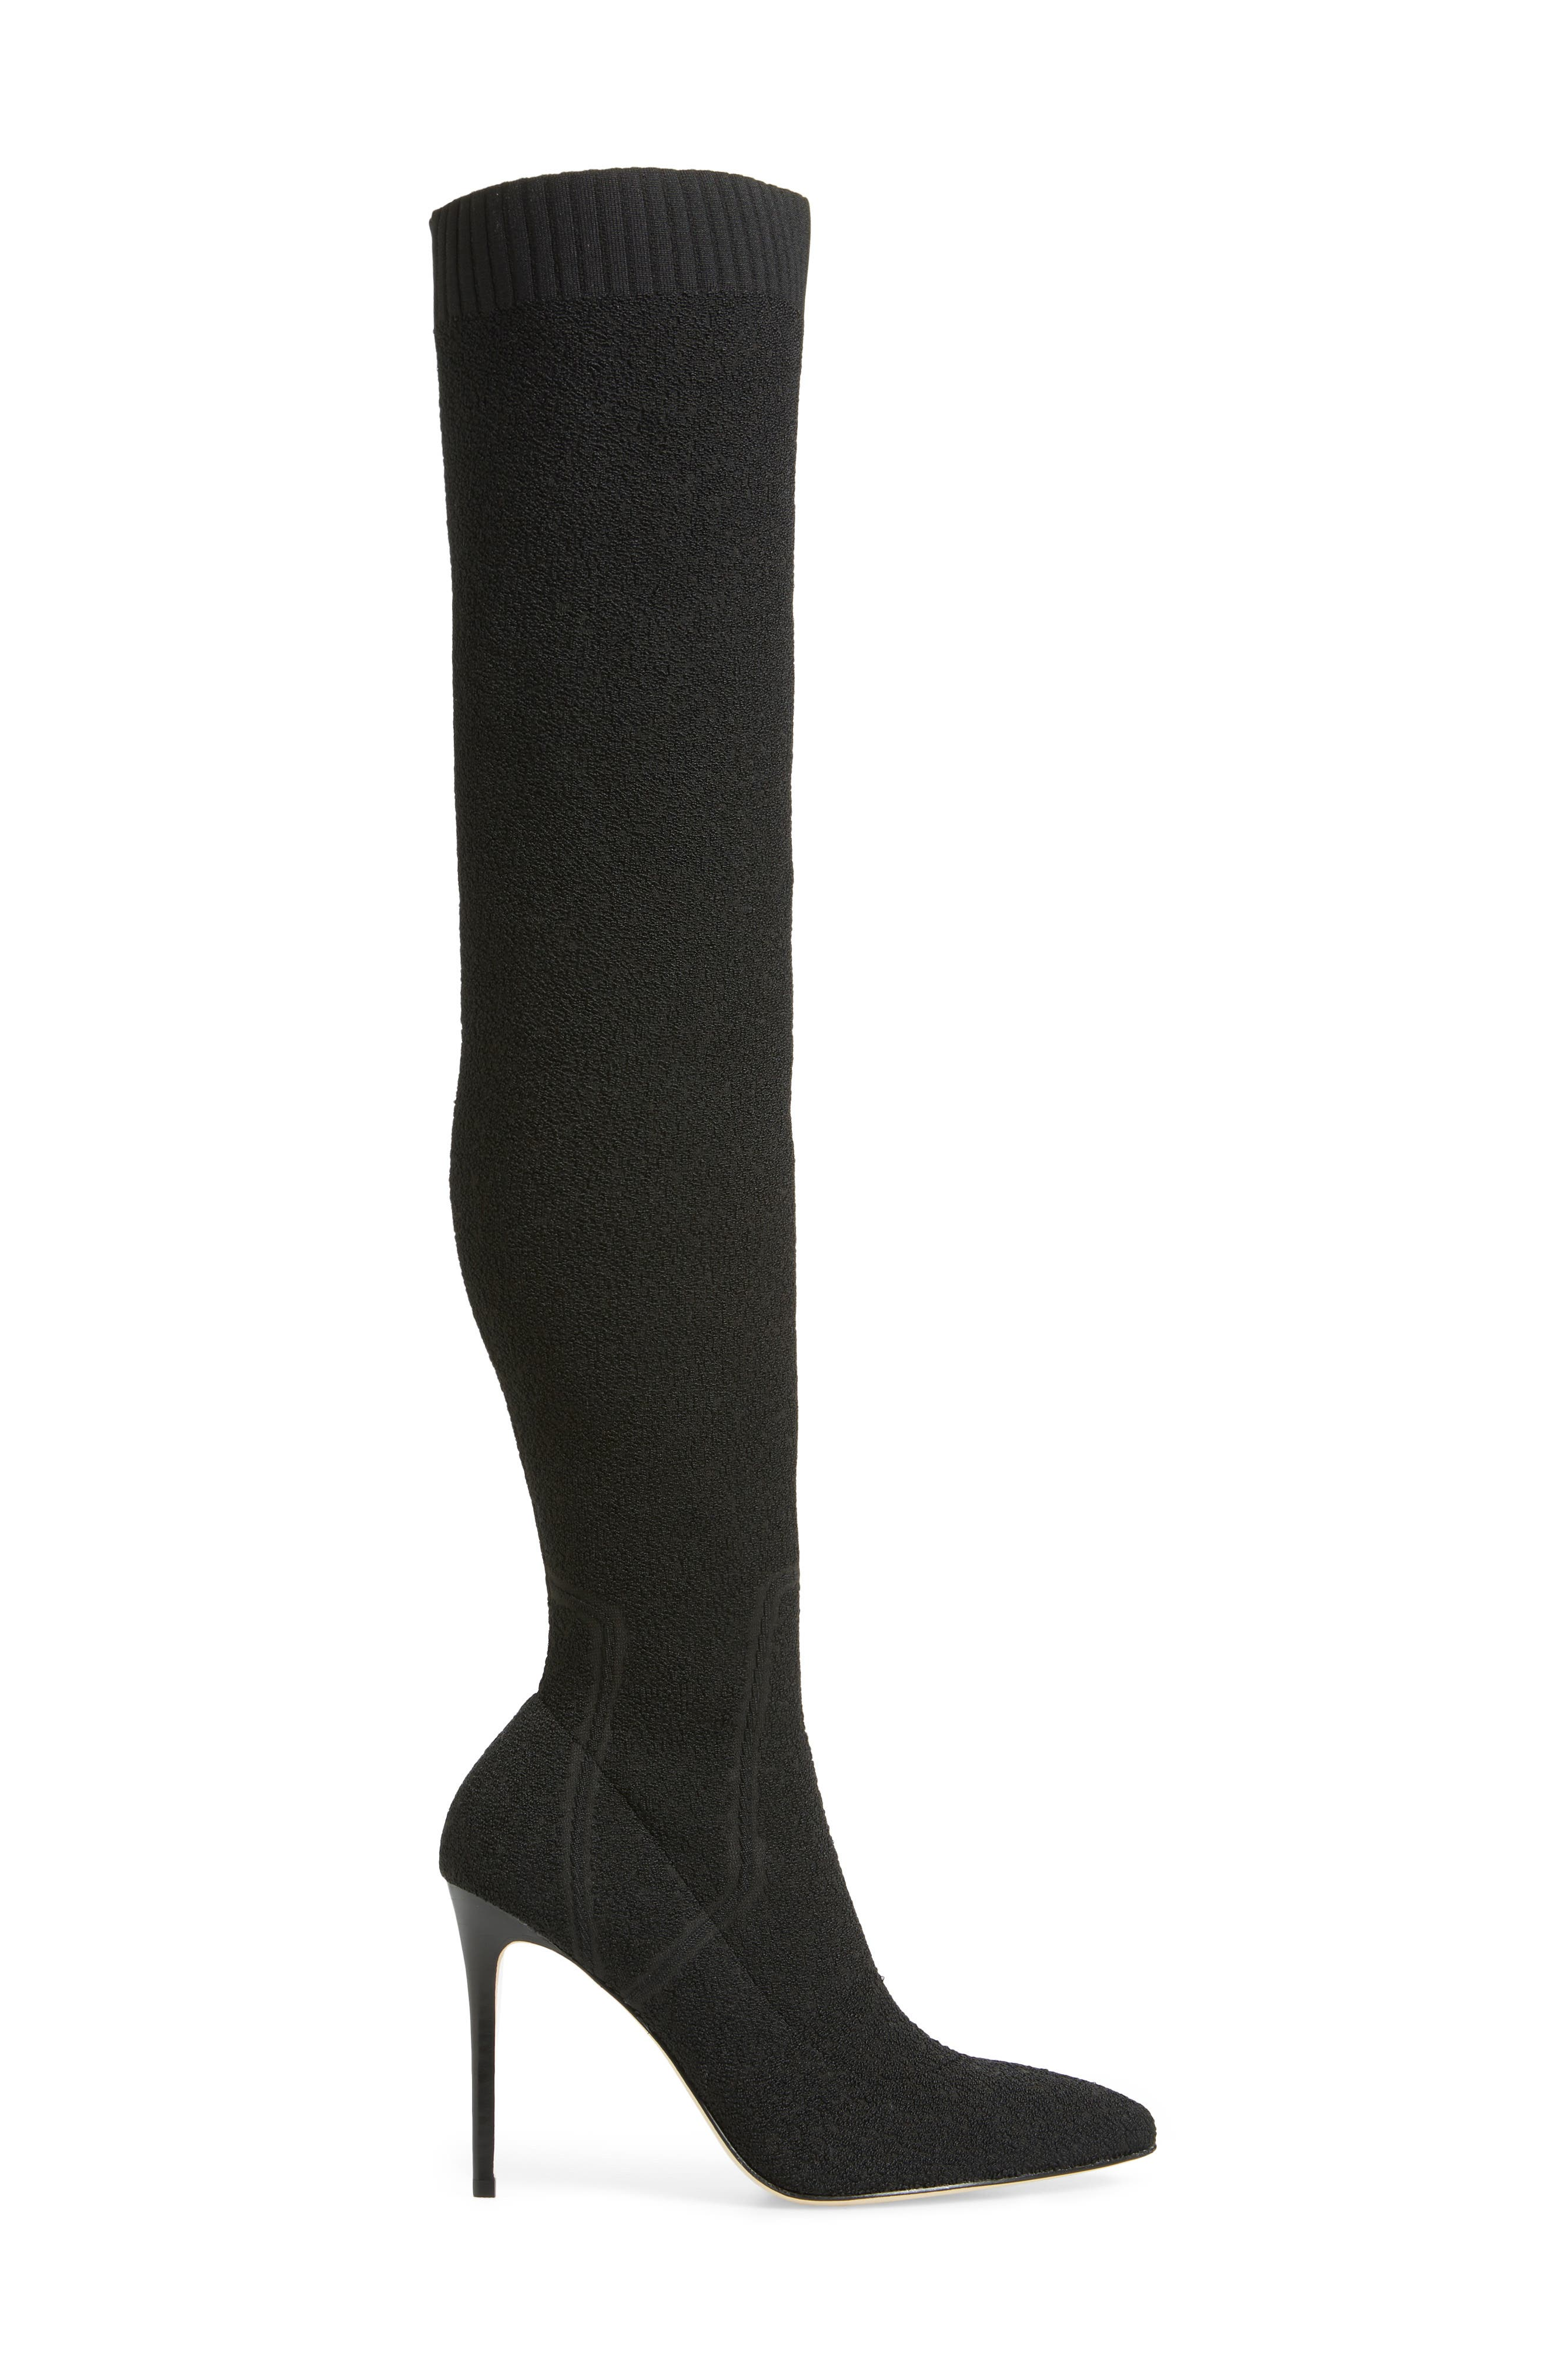 PAIGE, Jessamine Over the Knee Boot, Alternate thumbnail 3, color, 001